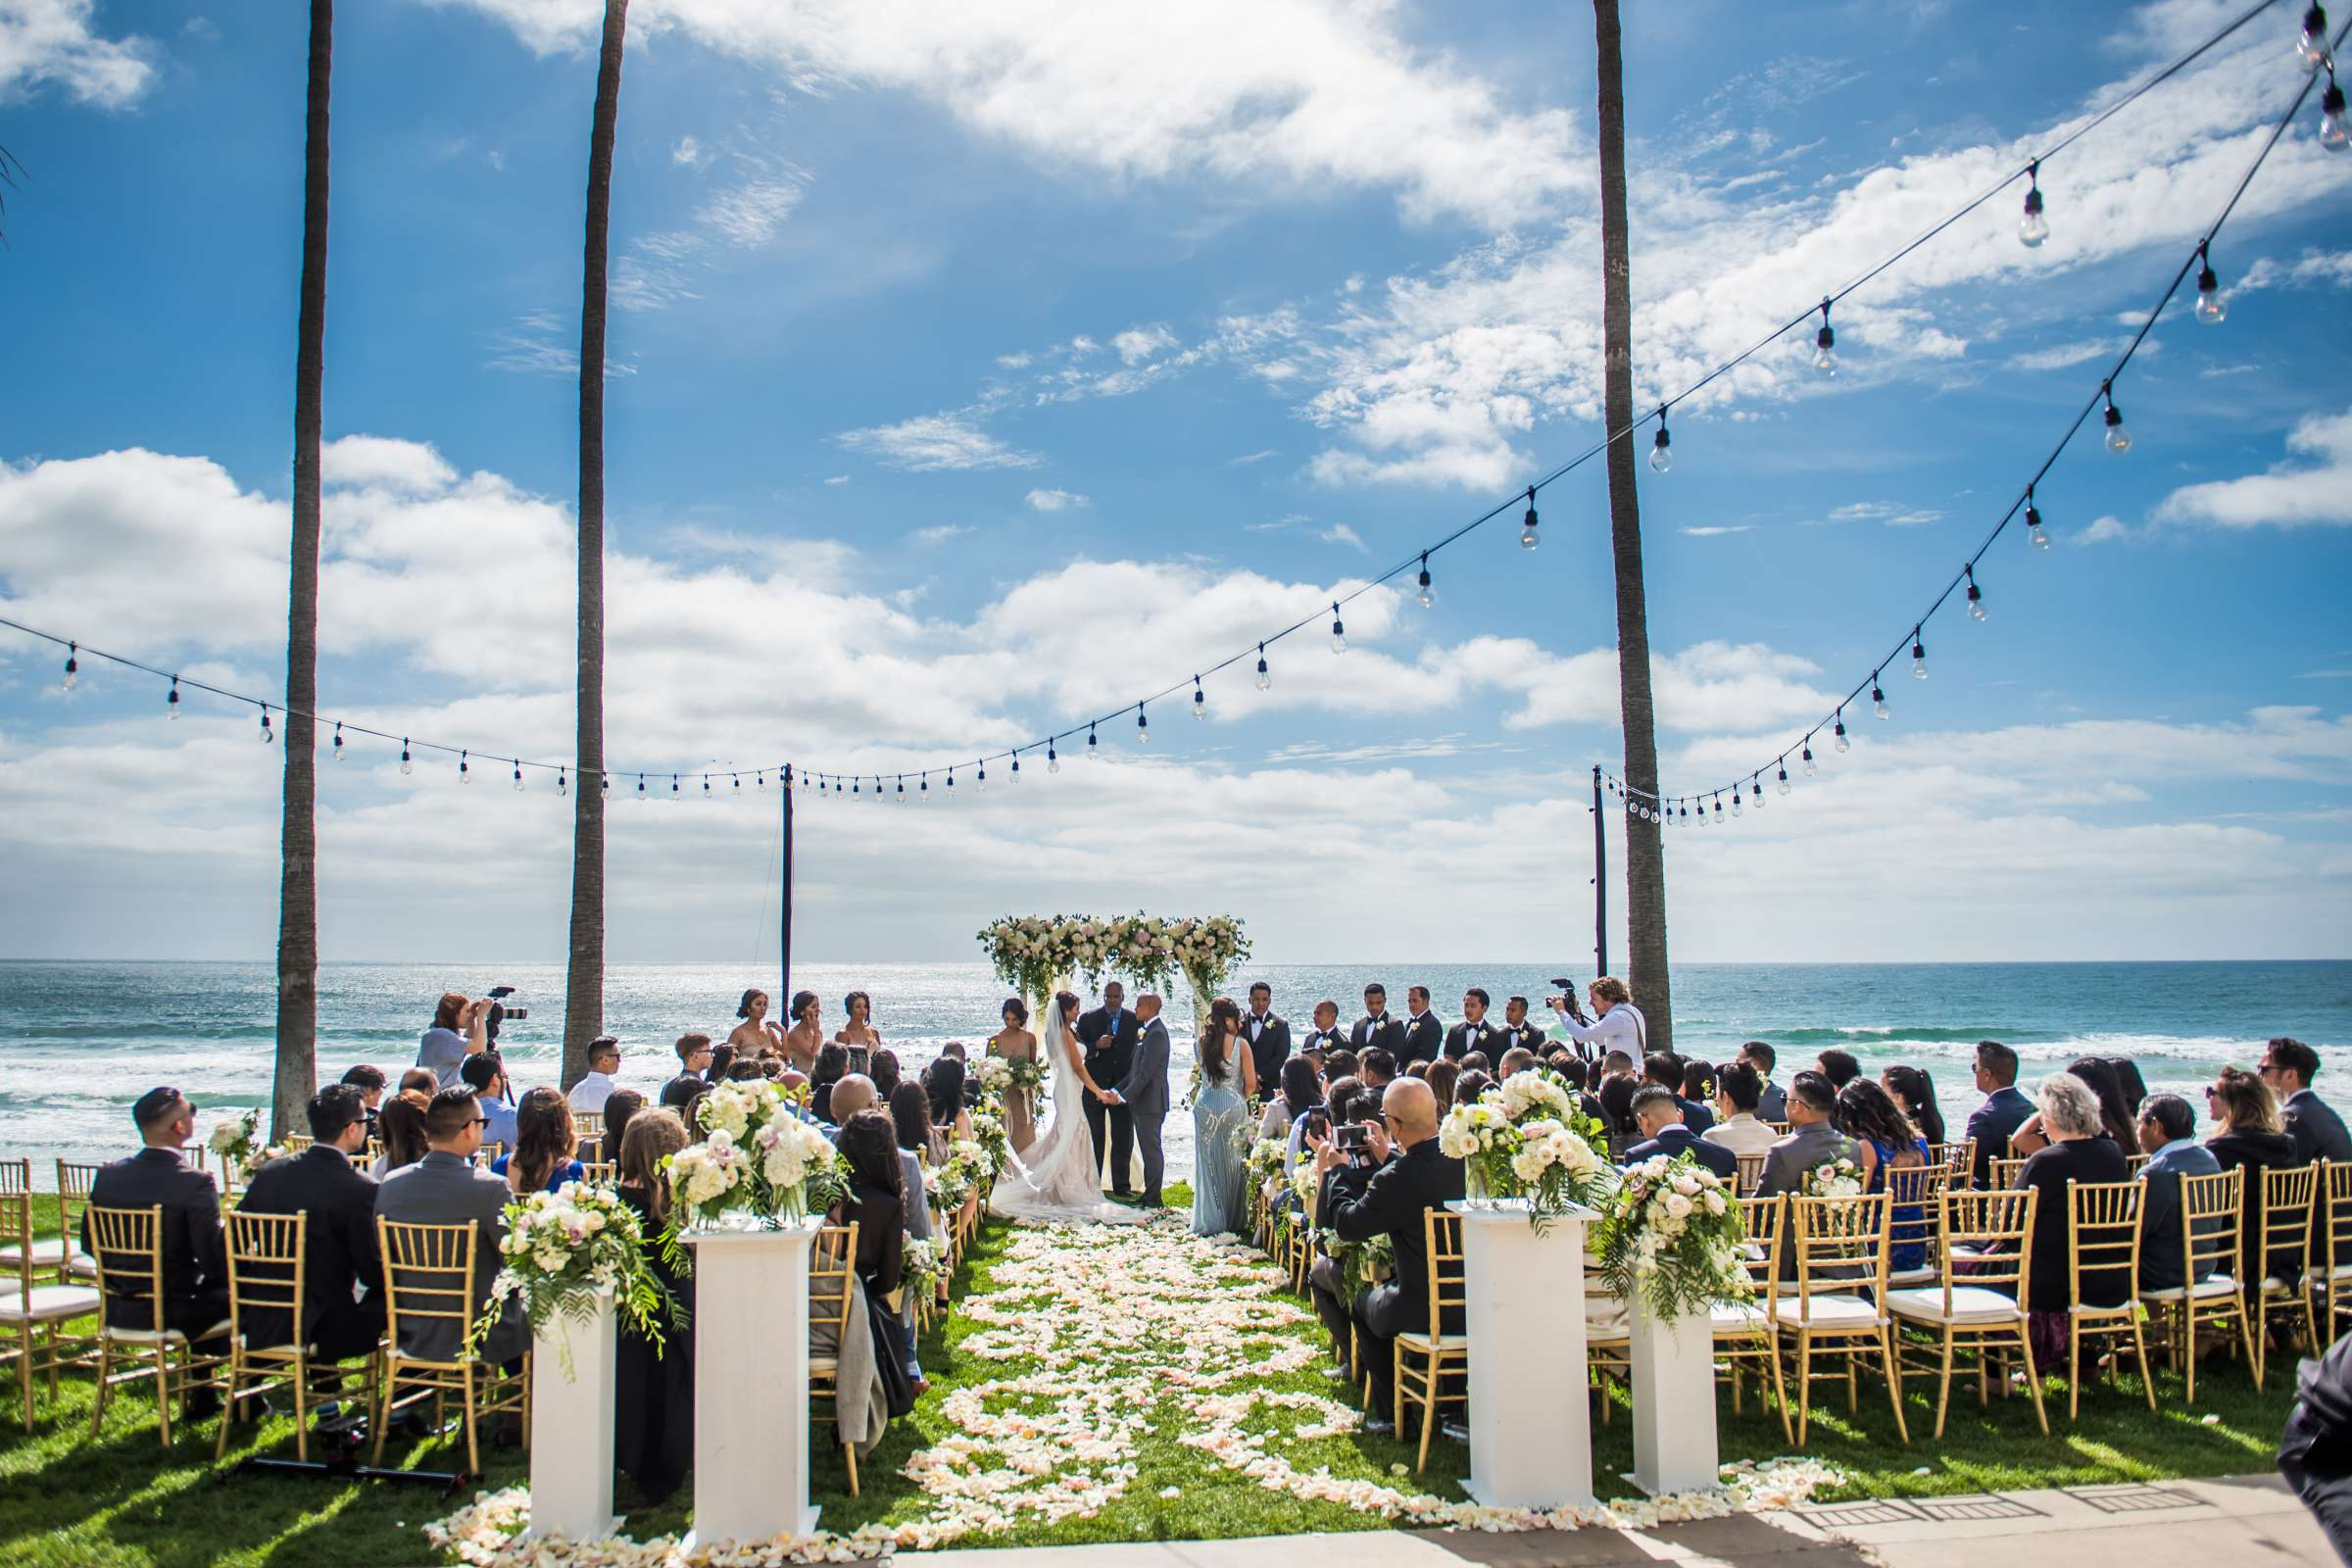 Scripps Seaside Forum Wedding coordinated by Lavish Weddings, Cindy and Justin Wedding Photo #381819 by True Photography